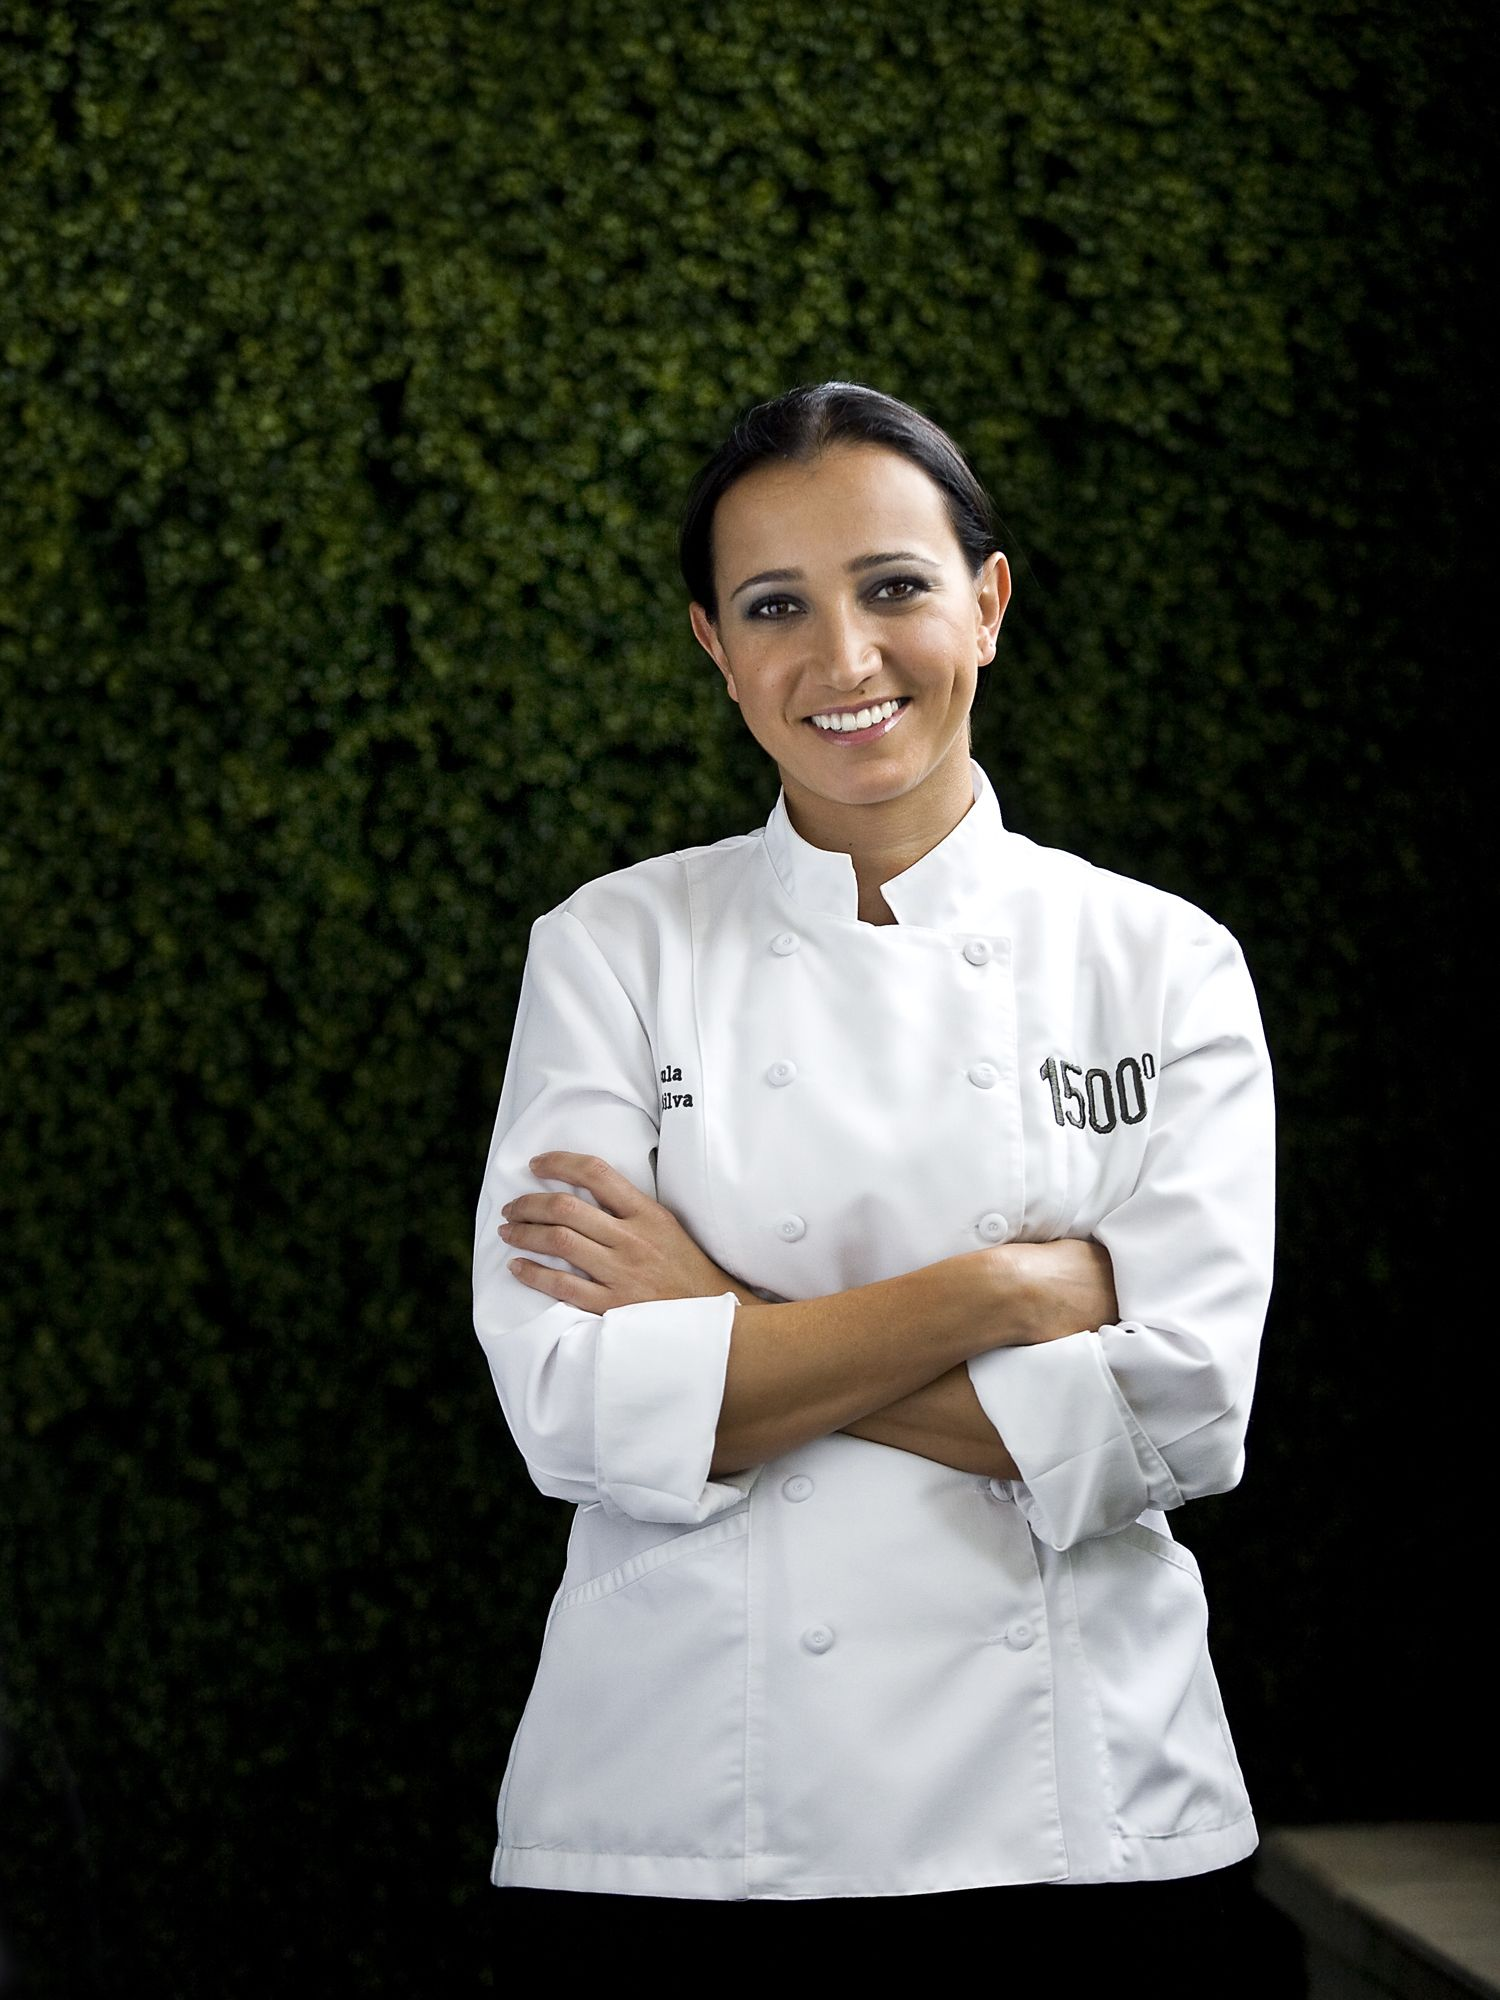 Celebrity Chefs and Events Announced for the 2013 St